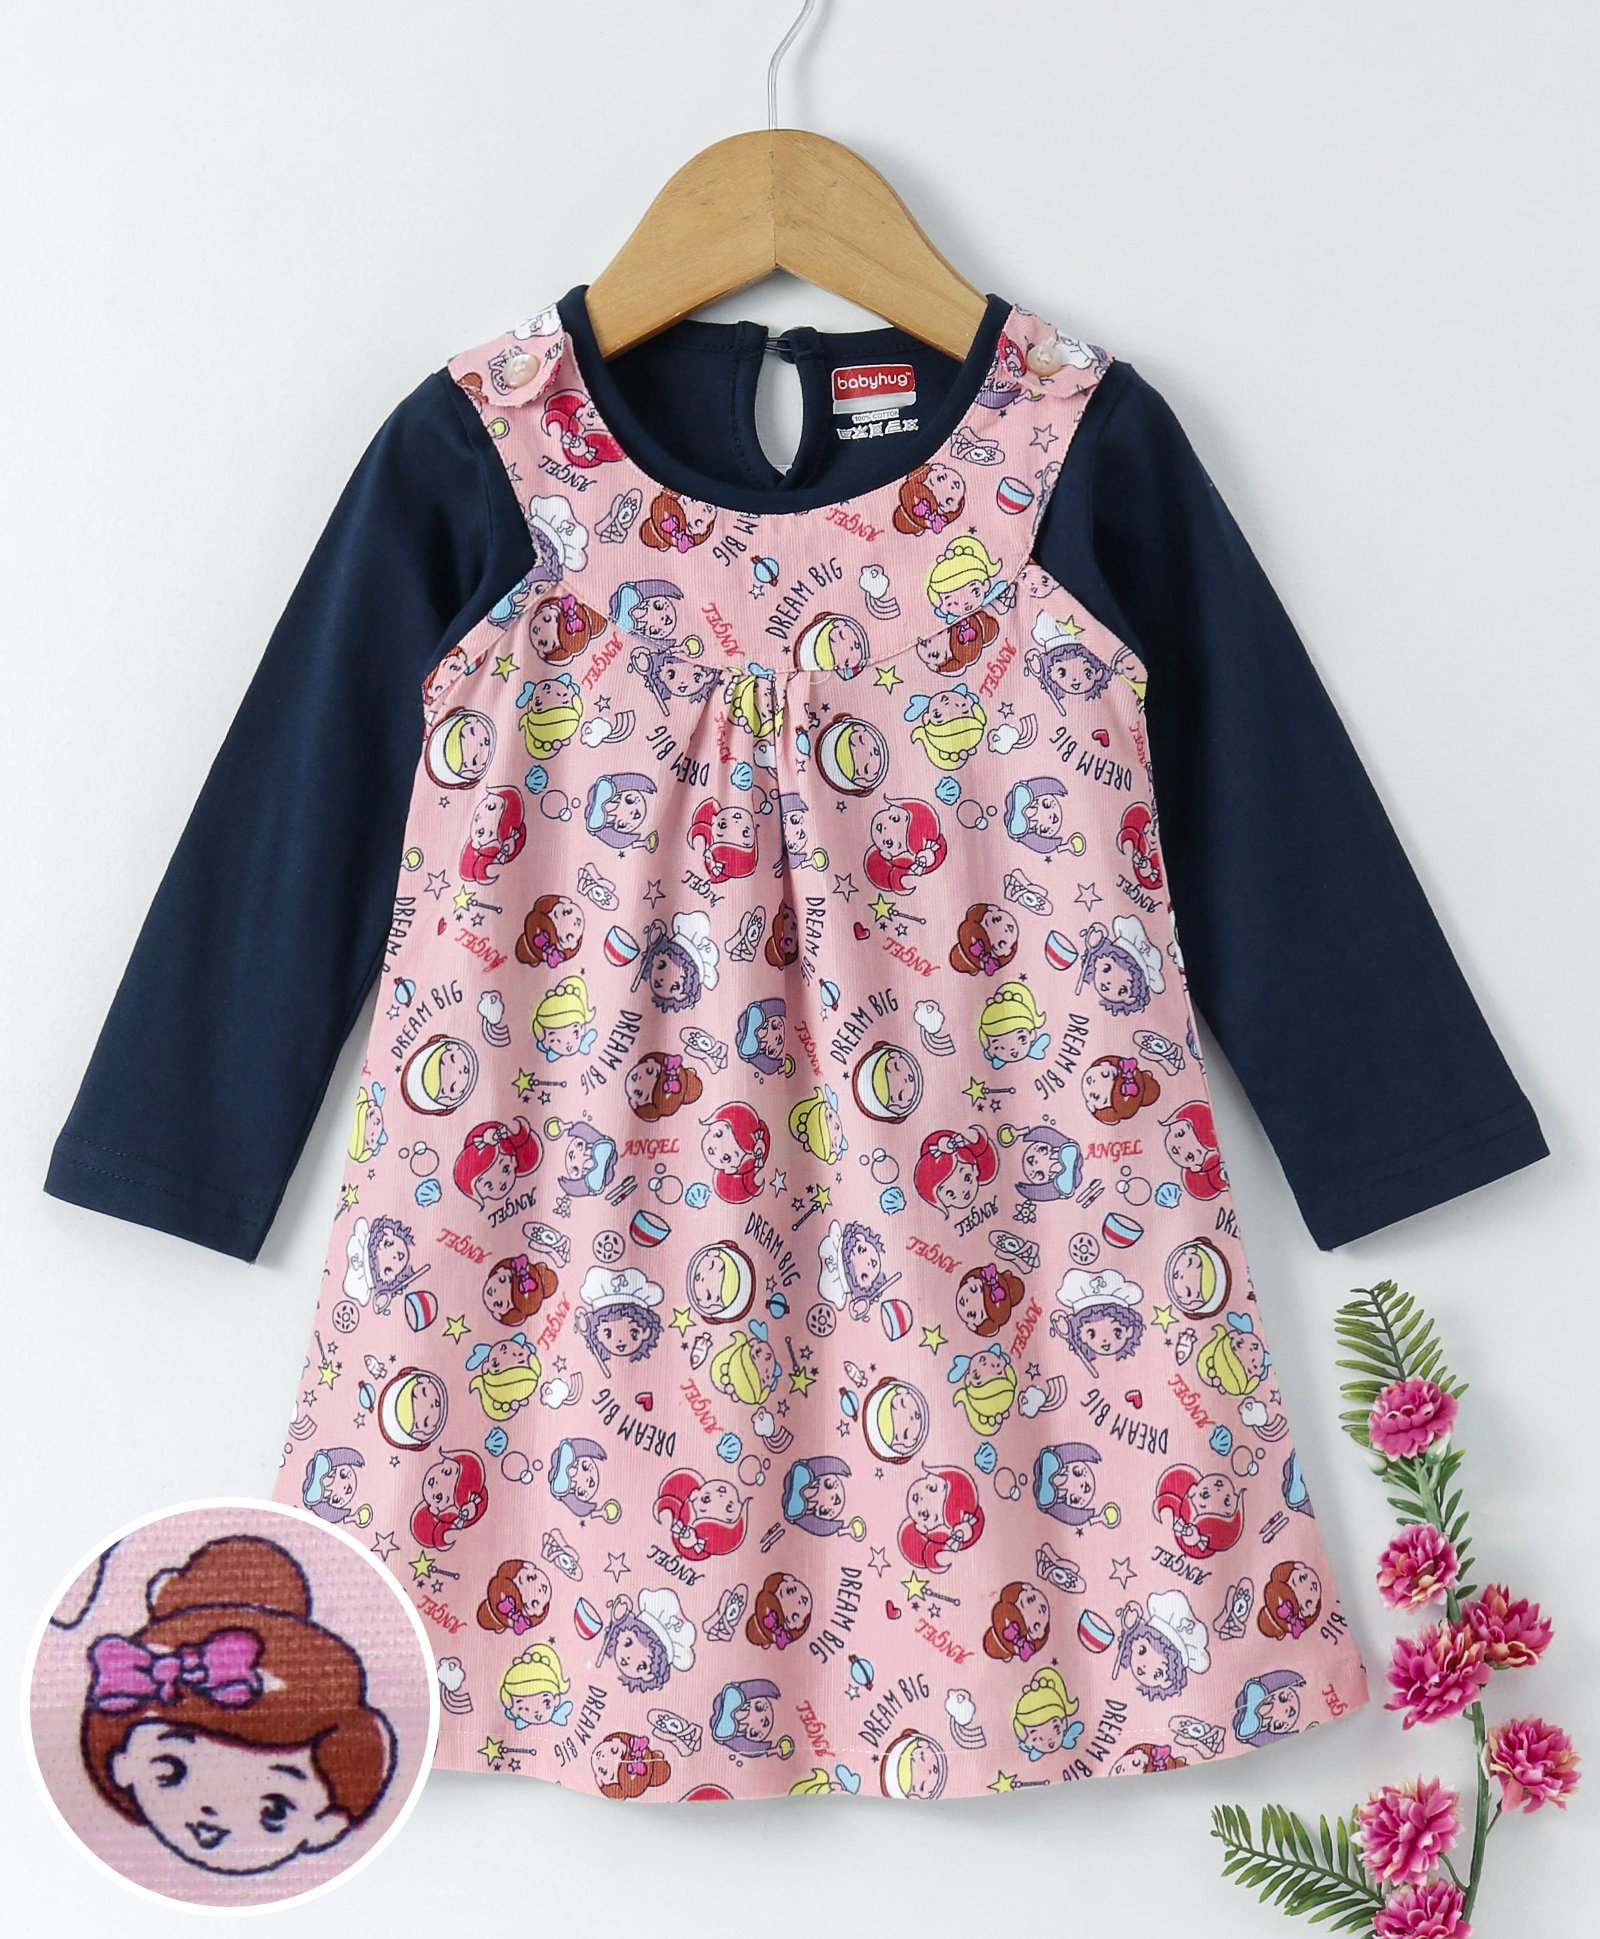 6197fe5470bc0 Buy Babyhug Printed Corduroy Frock With Inner Tee Peach Navy for ...